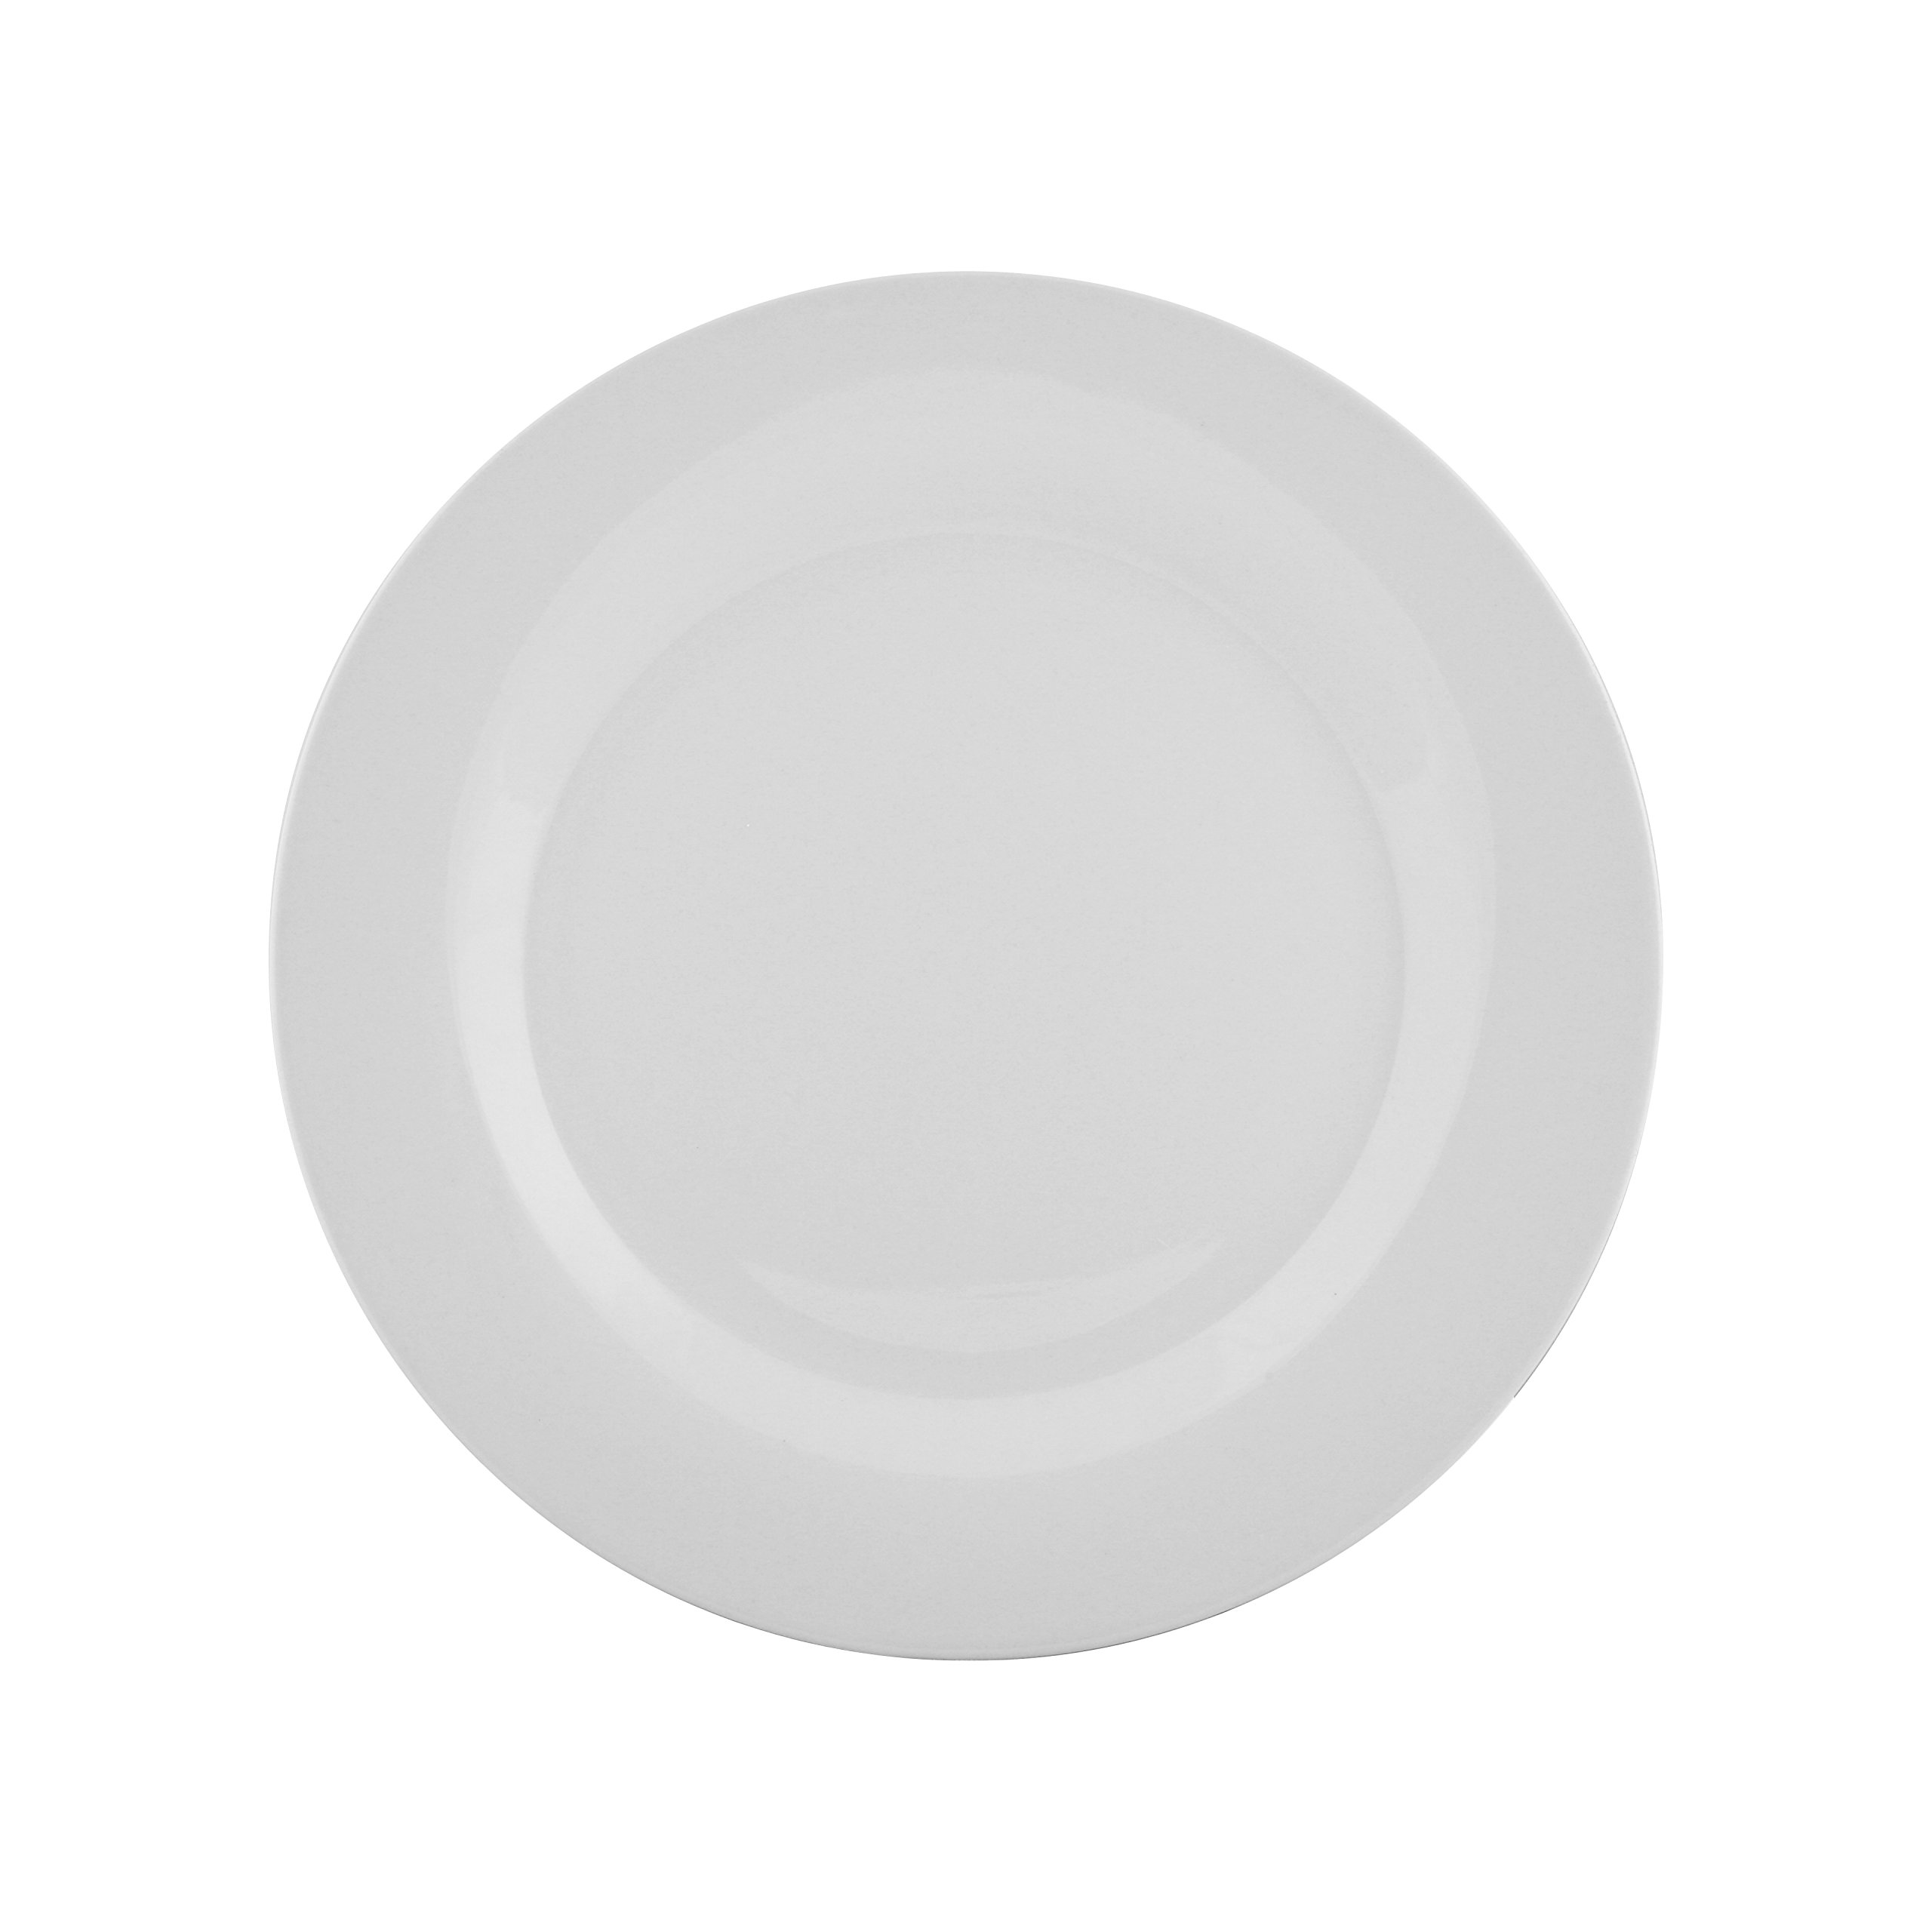 10 Strawberry Street Catering Set 10-1/2-Inch Dinner Plate, Set of 12 by 10 Strawberry Street (Image #2)